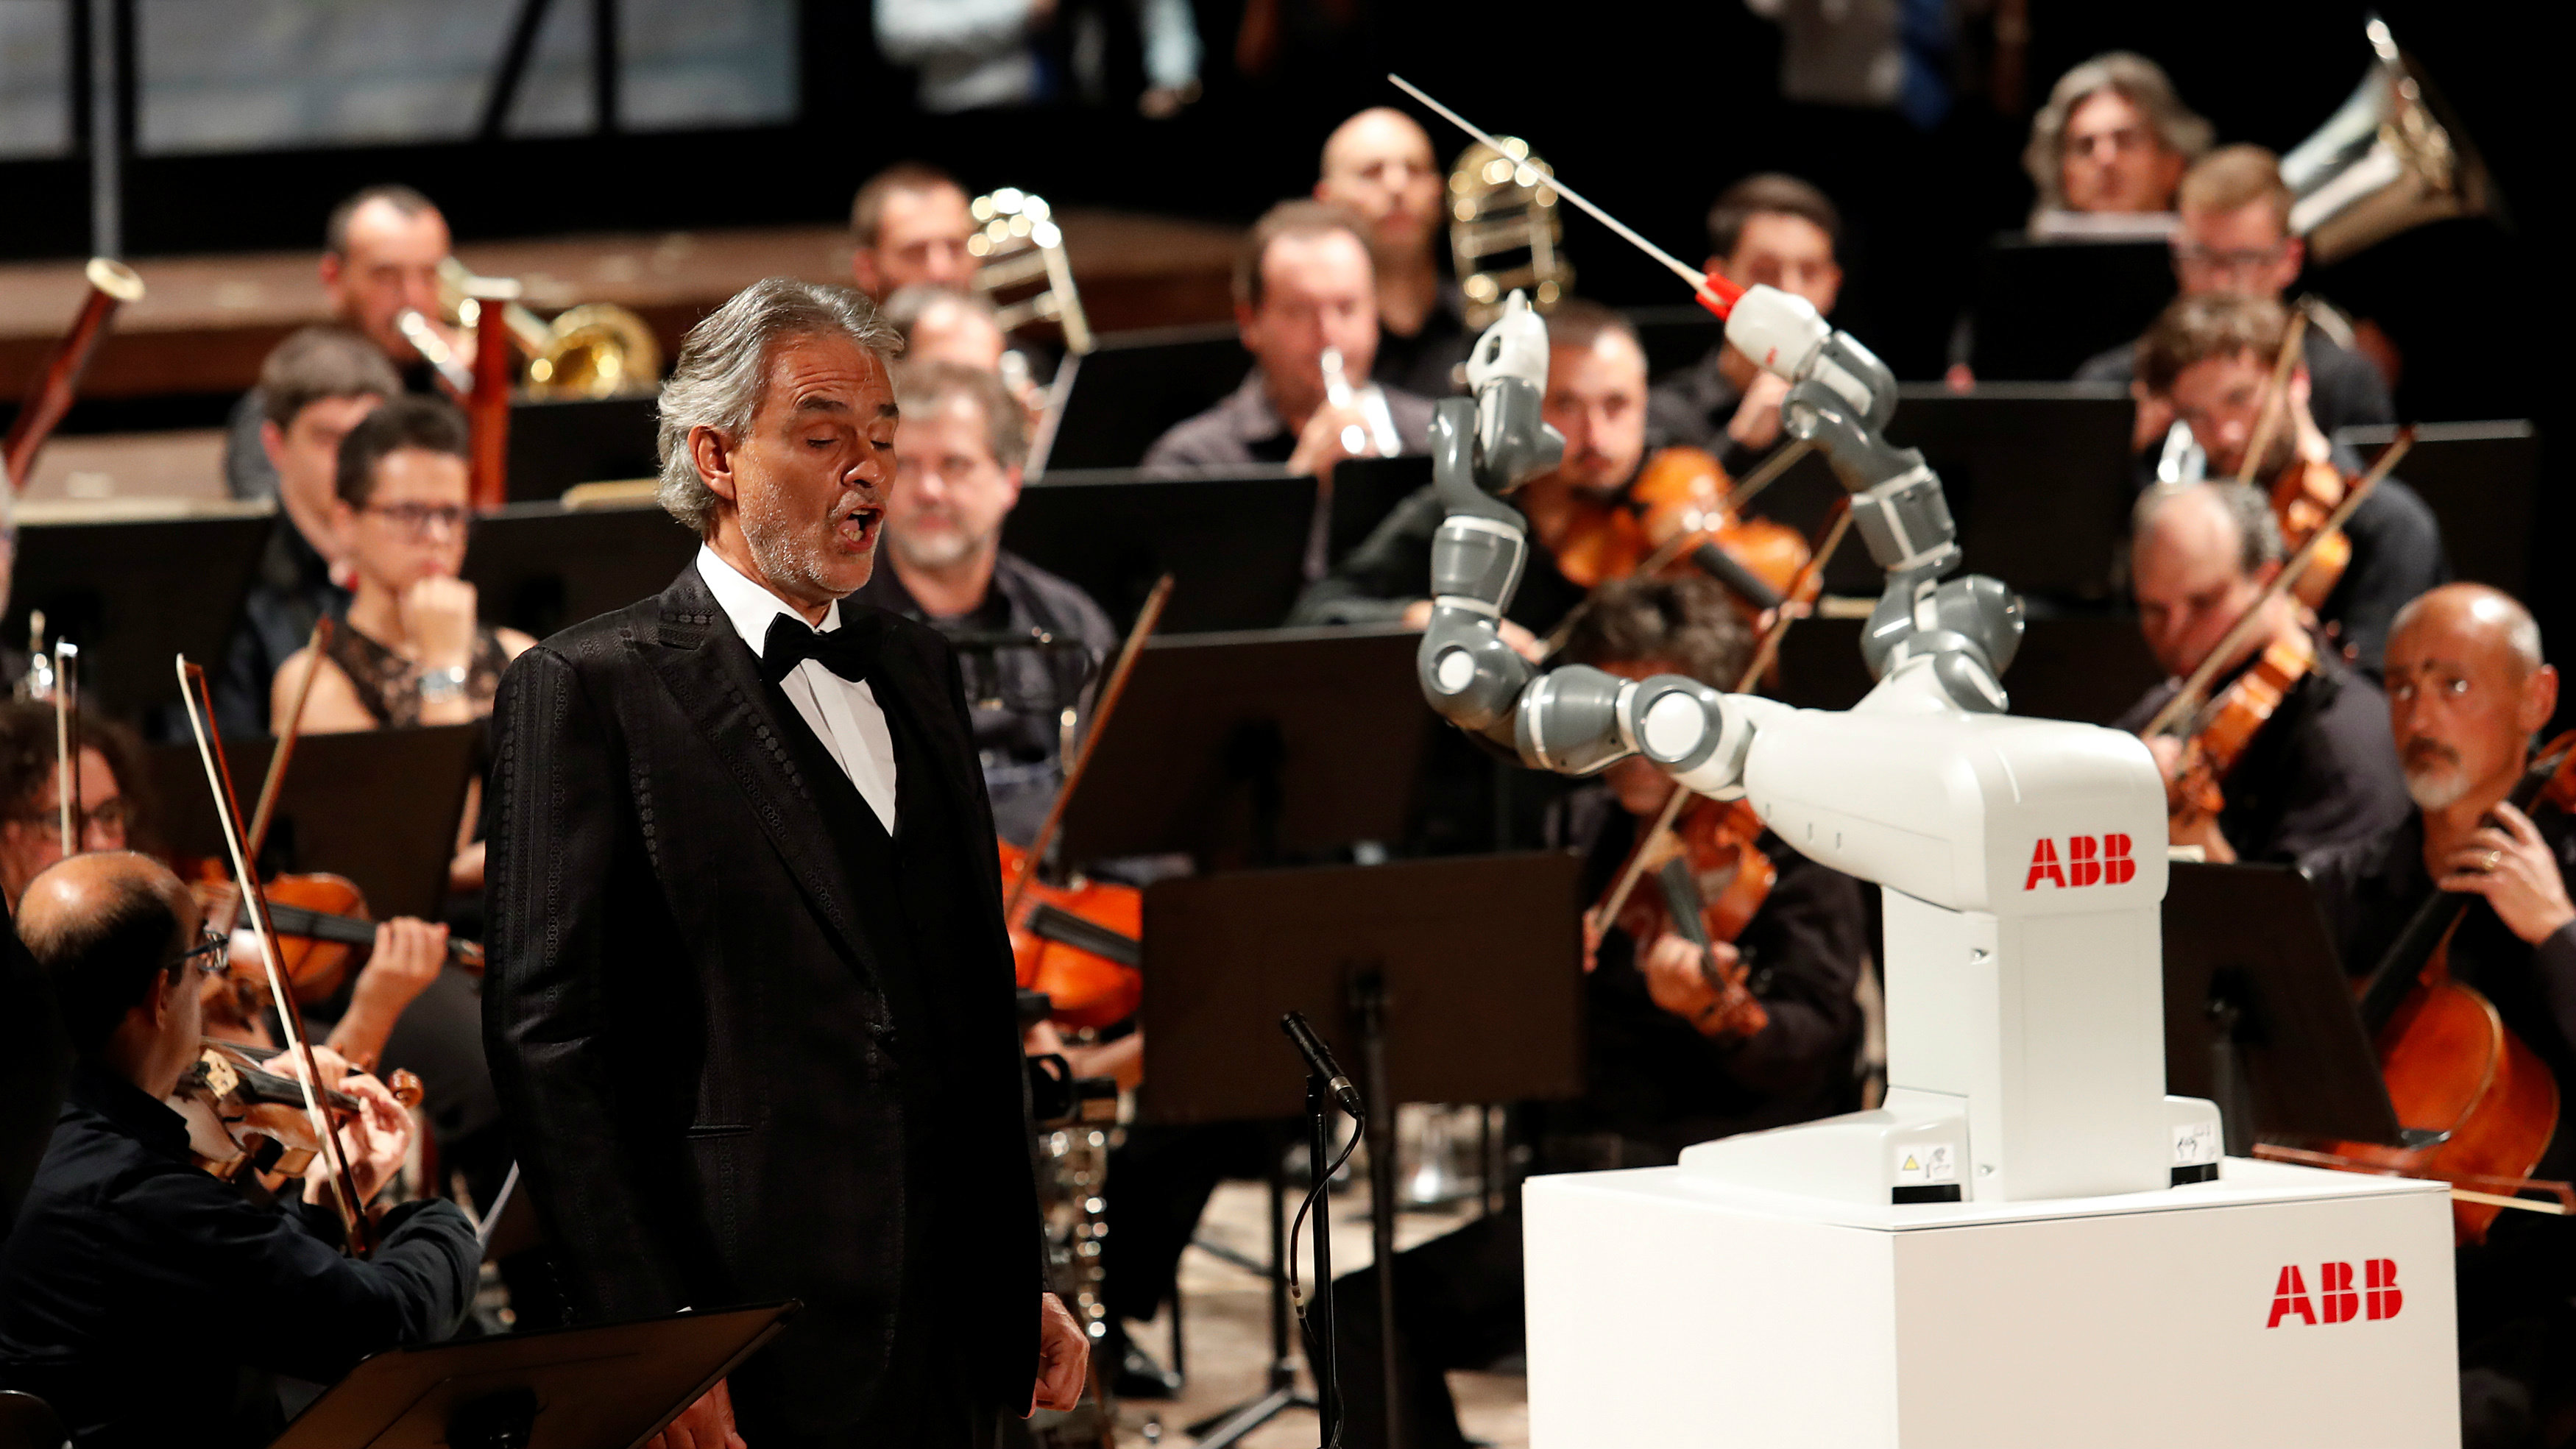 Humanoid robot YuMi conducts the Lucca Philharmonic Orchestra